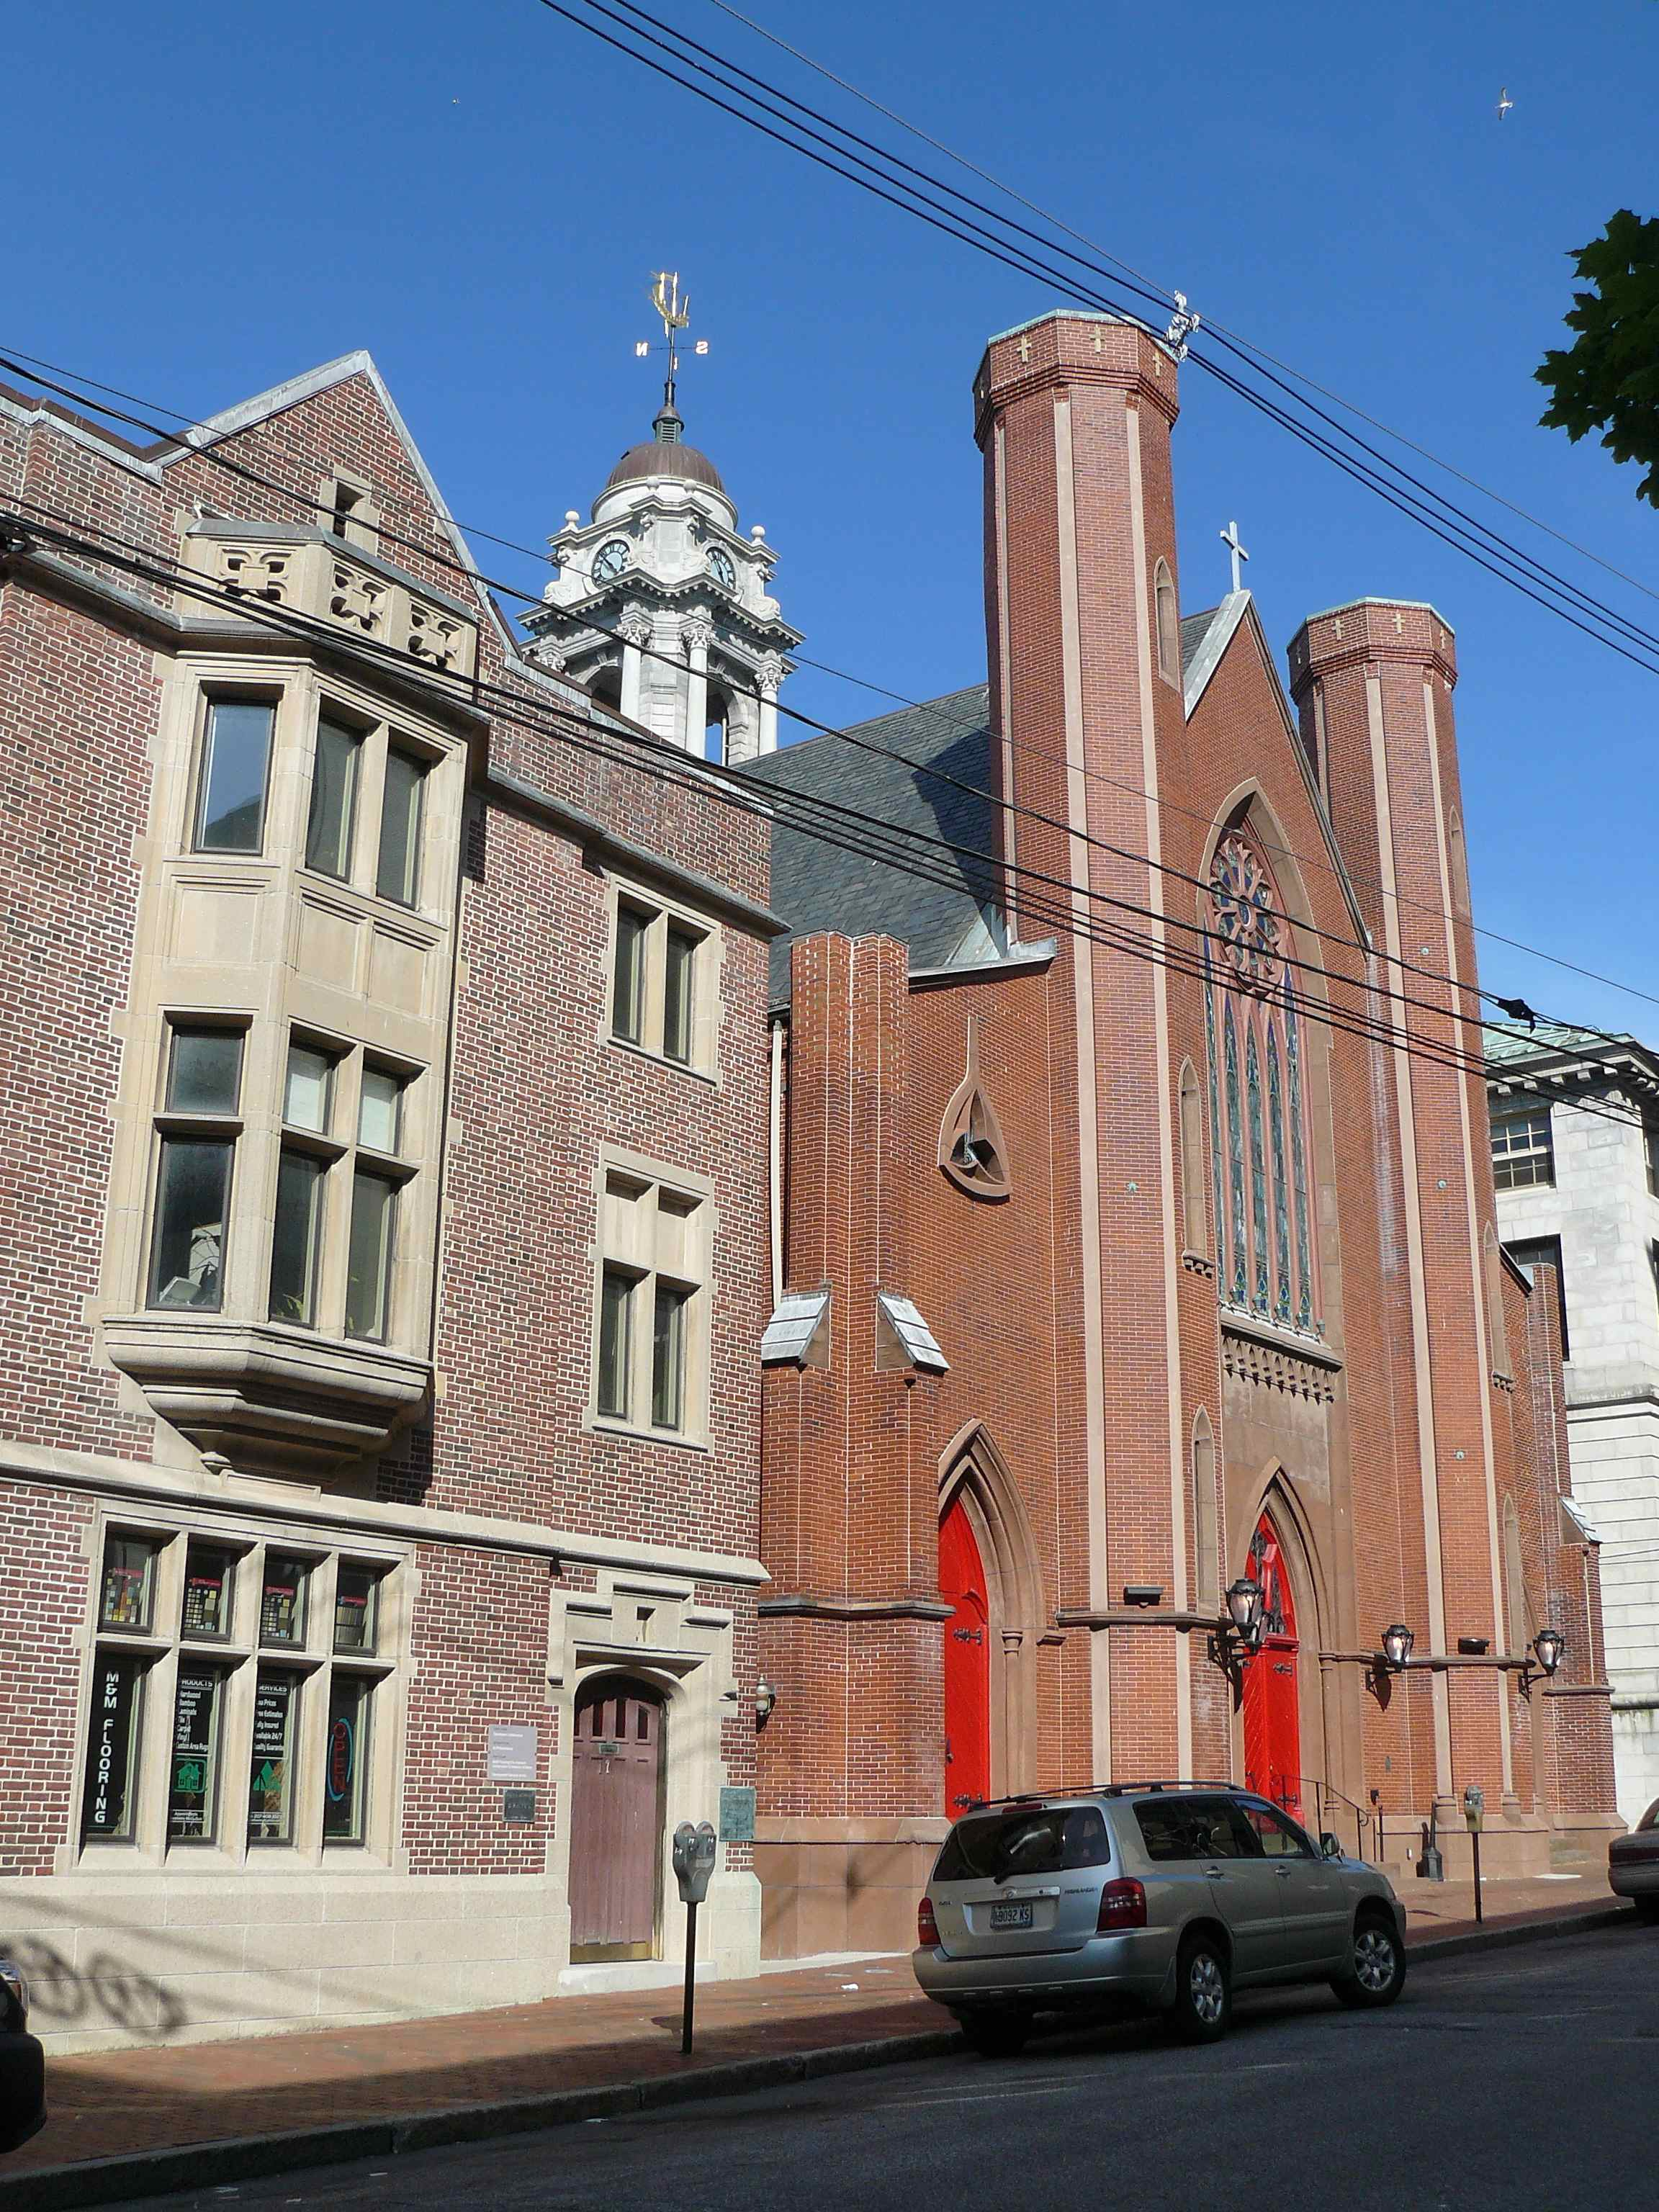 Portland_11-19_Chestnut_St_June_2012_Church(1856)_and_Community_House(1924).jpg